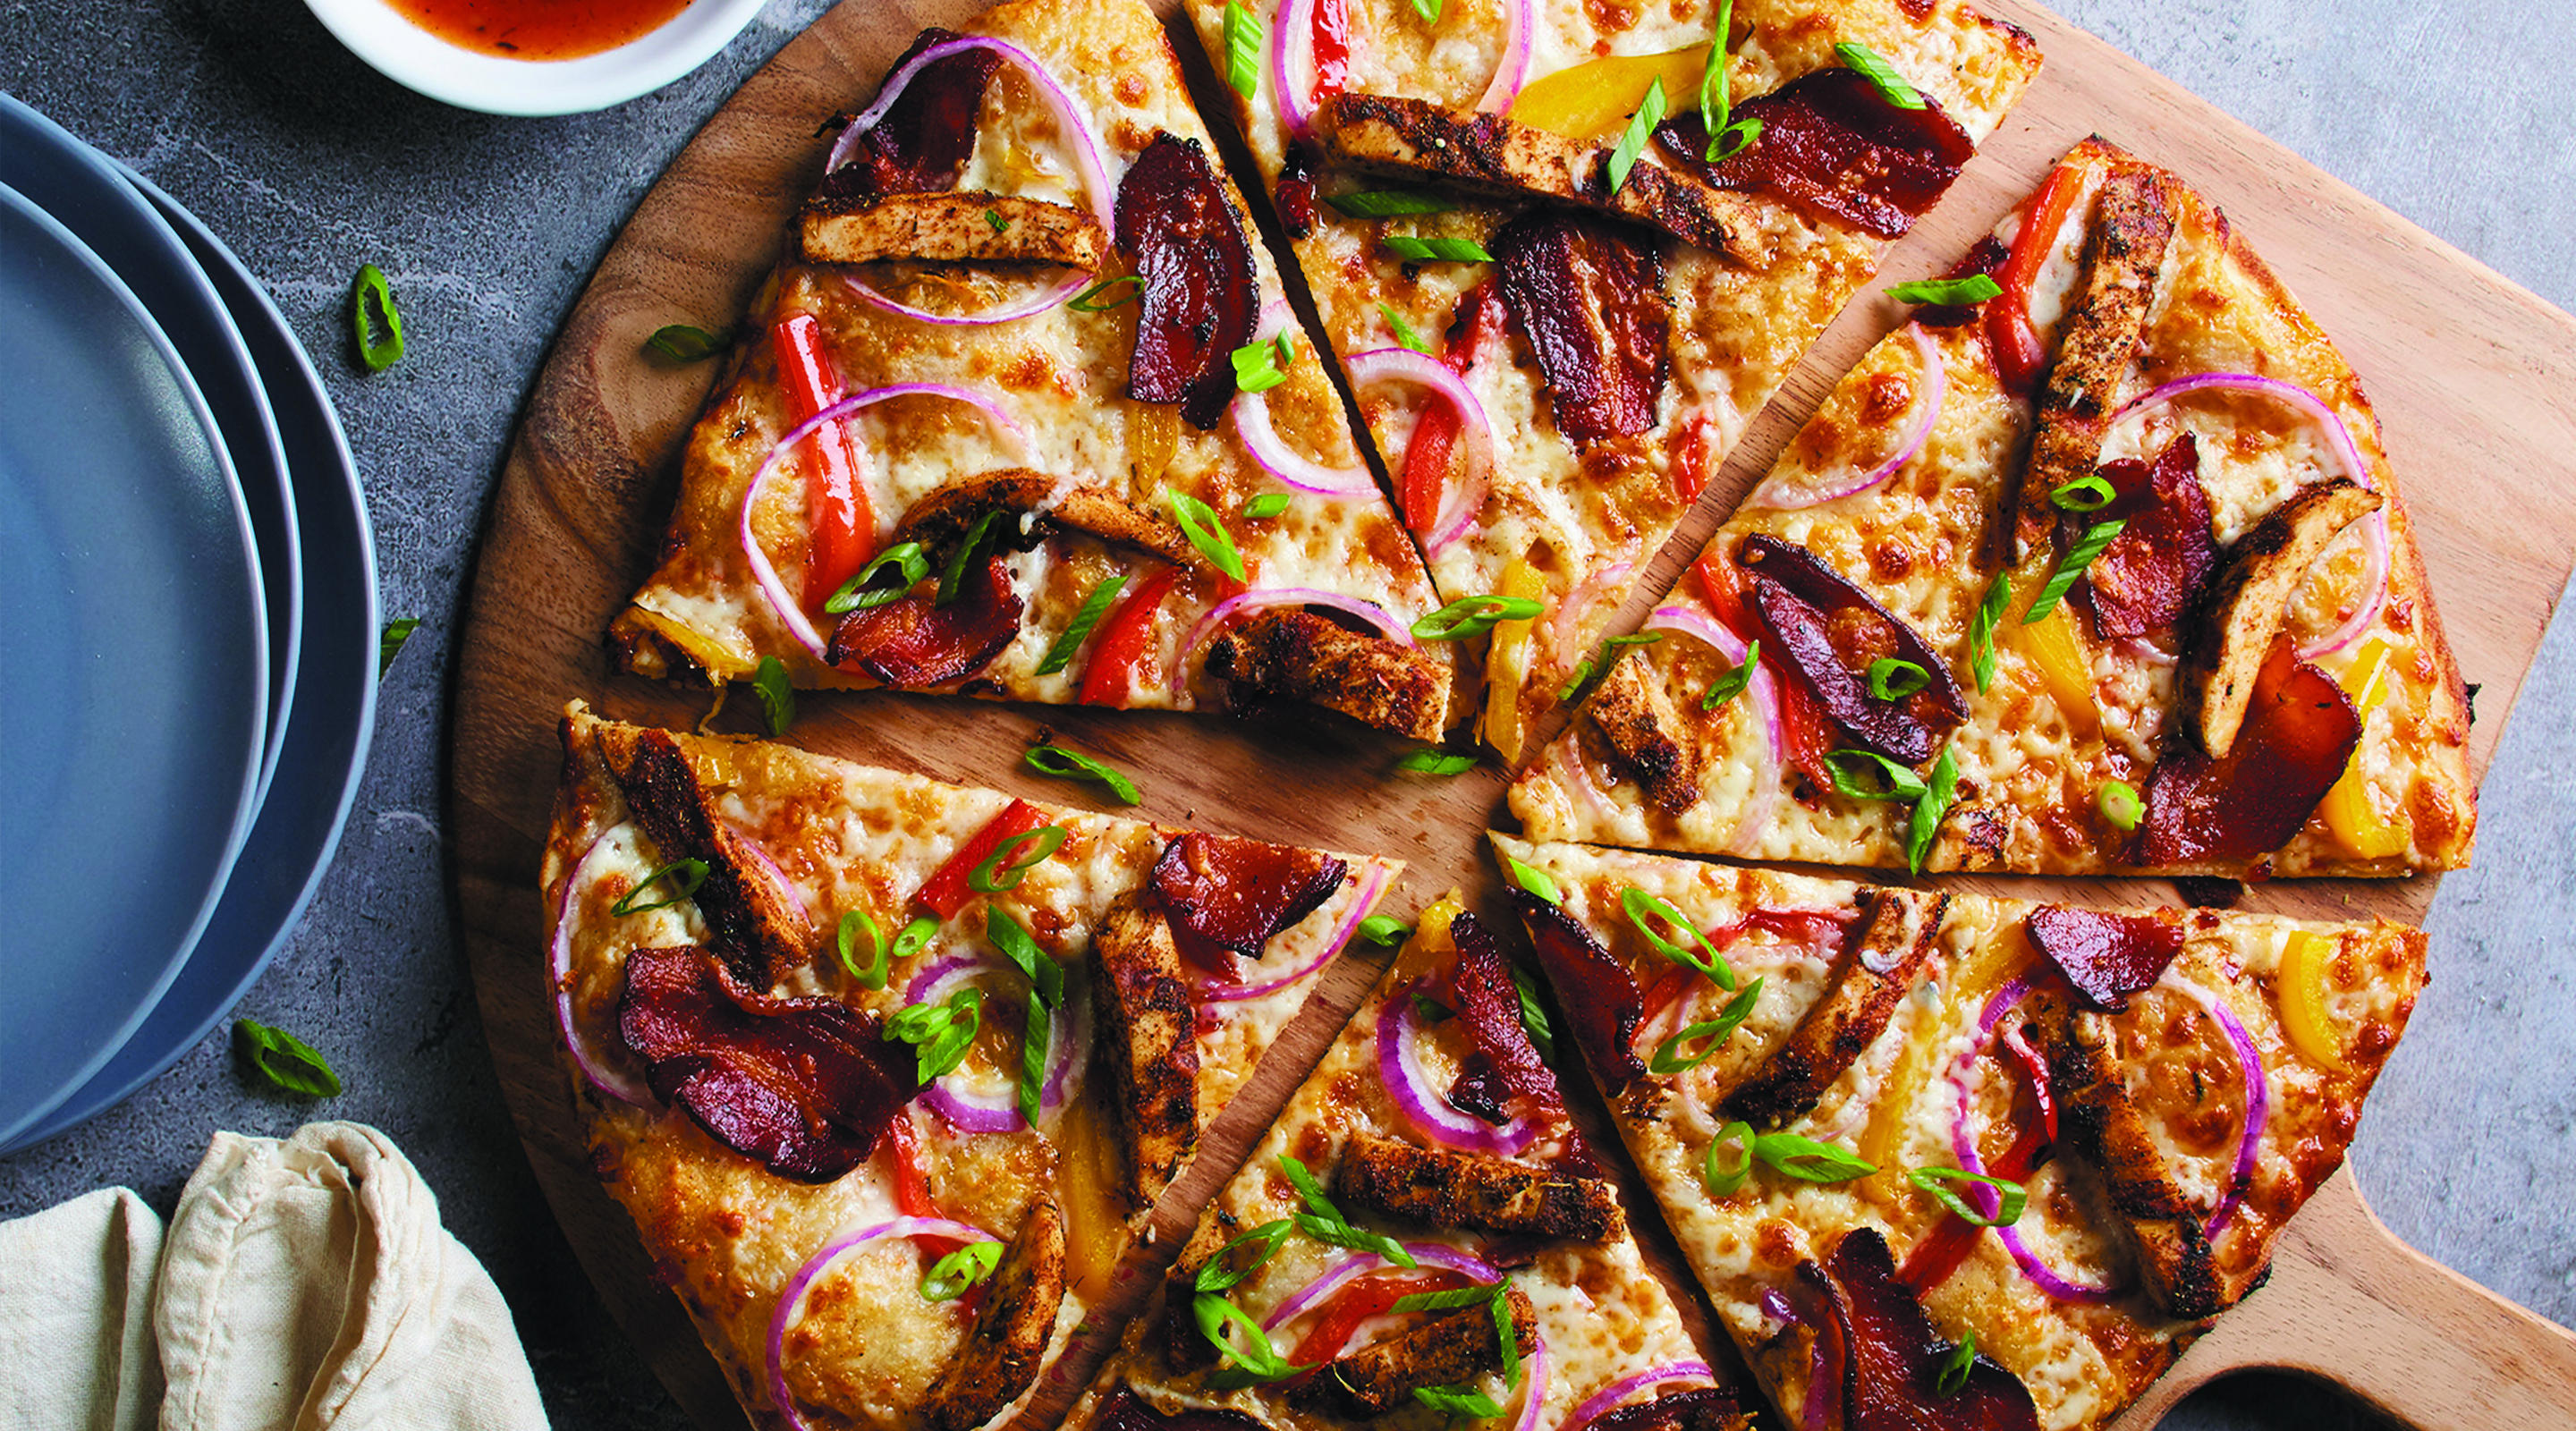 Jamaican Jerk Chicken Pizza, with spicy sweet Caribbean sauce, authentic Jamaican spices, Nueske's applewood smoked bacon, red onions and bell peppers.